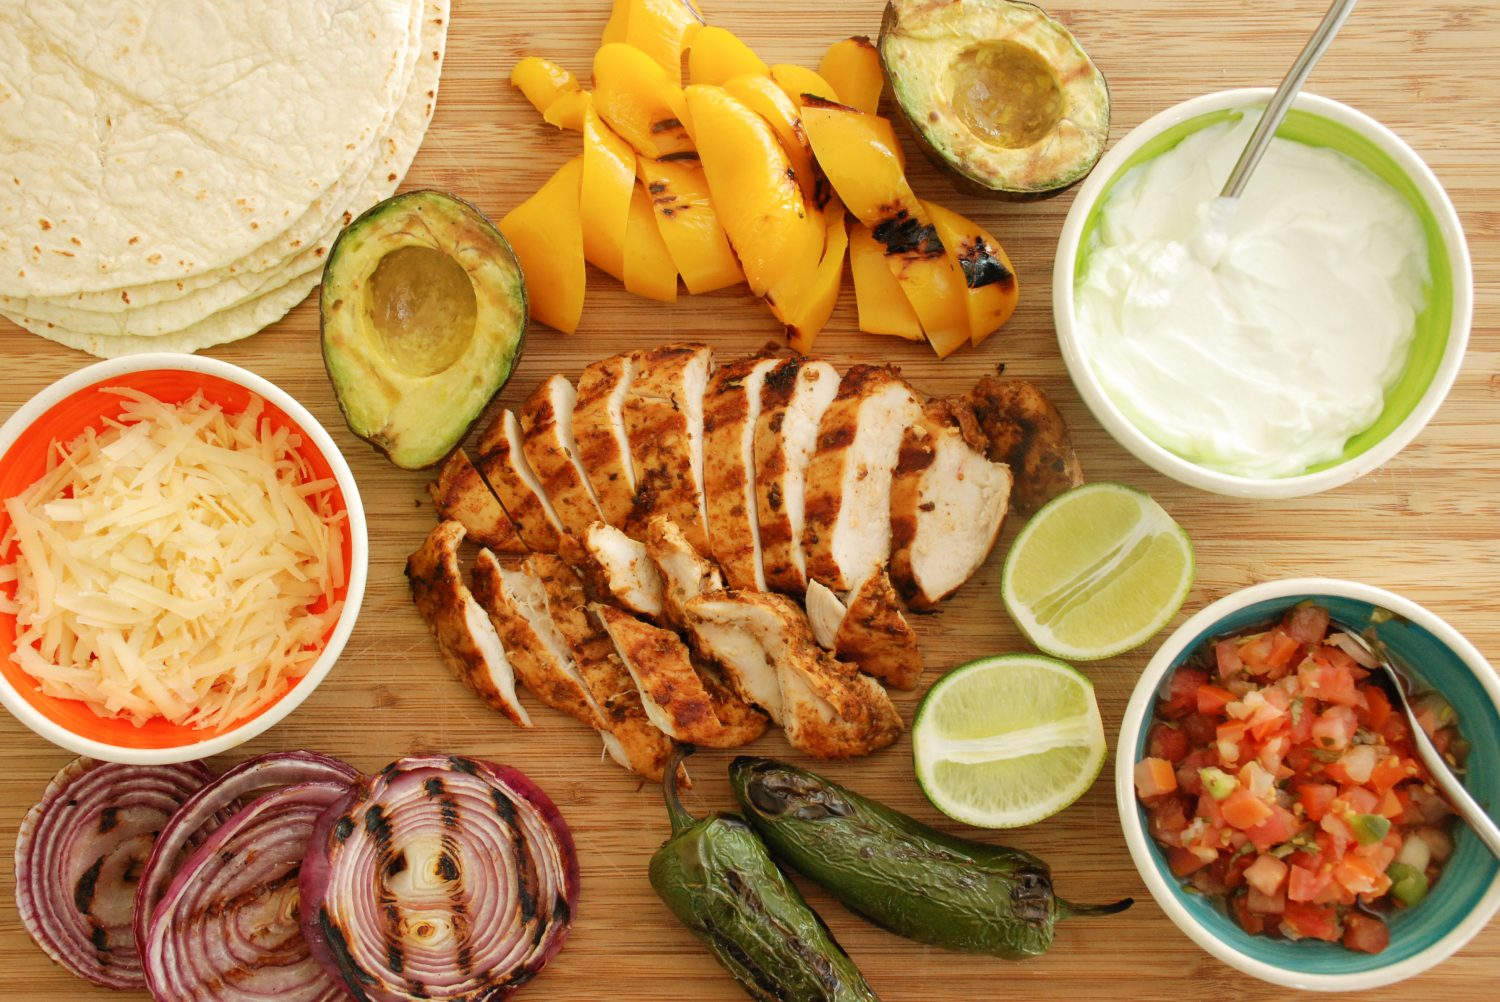 Lime-Marinated Grilled Chicken Fajitas with Grilled Avocado